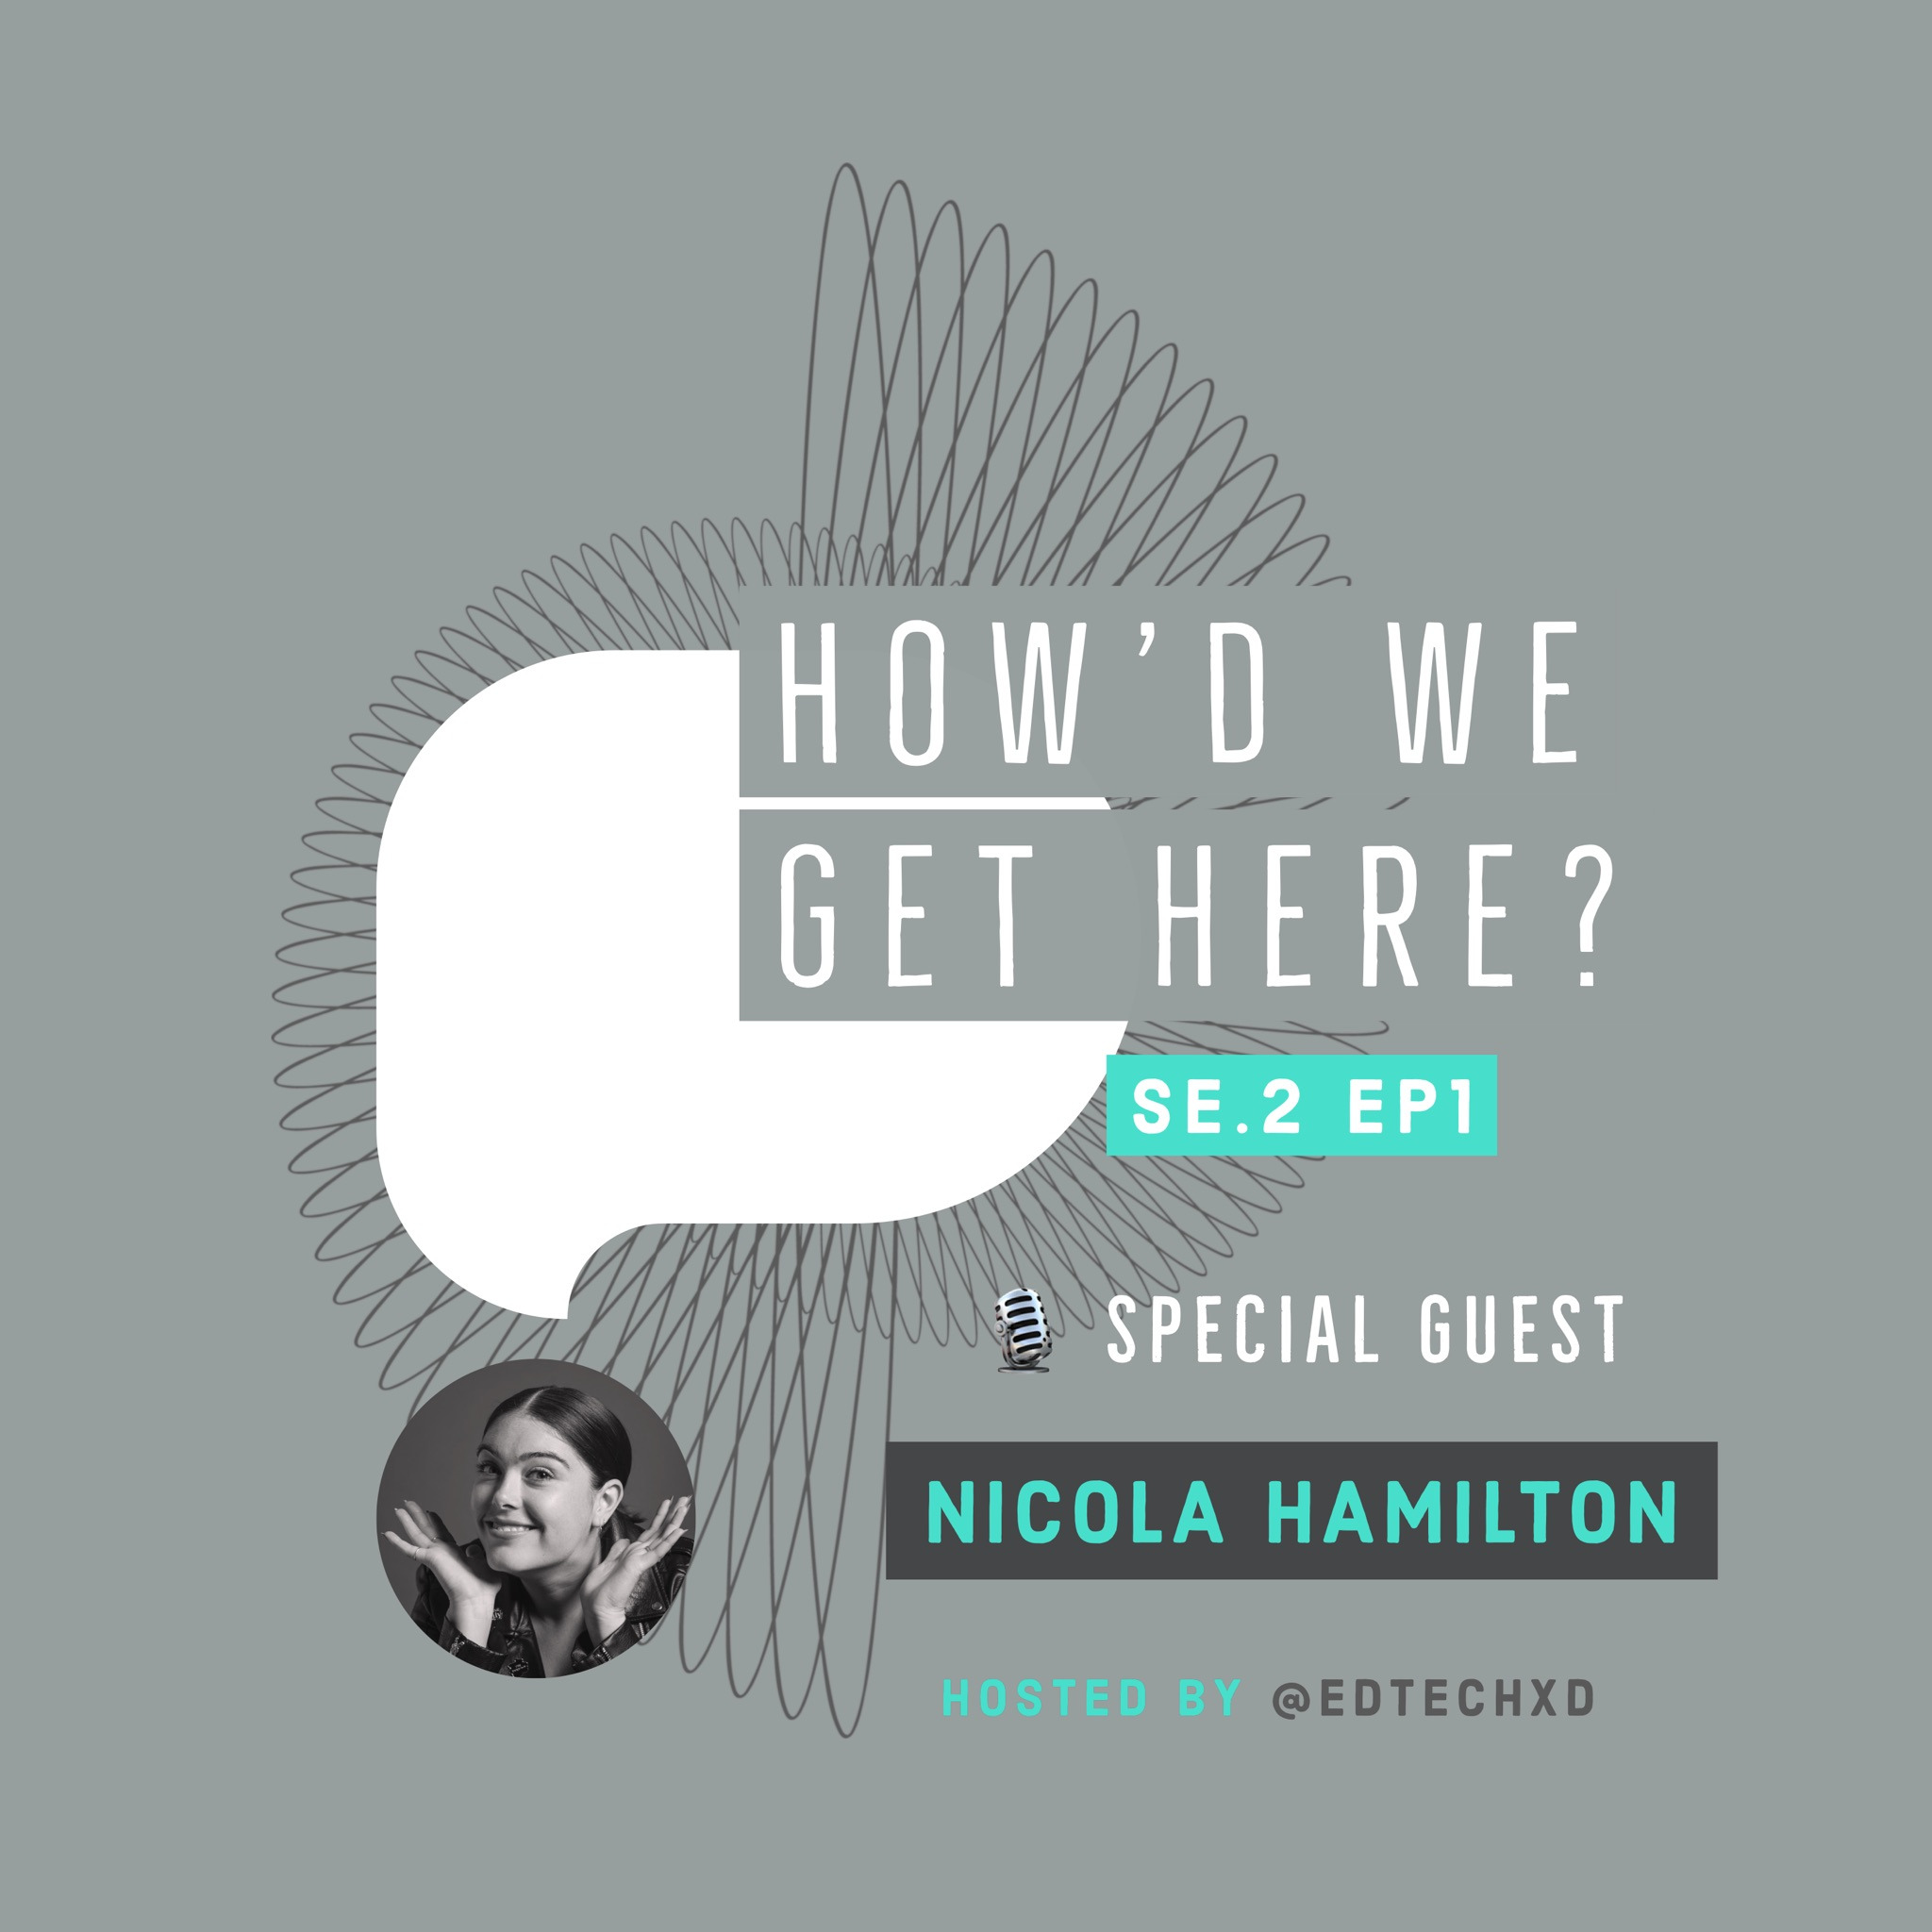 How'd we get here? podcast season 2 episode 1. Nicola Hamilton. Professional Personas.